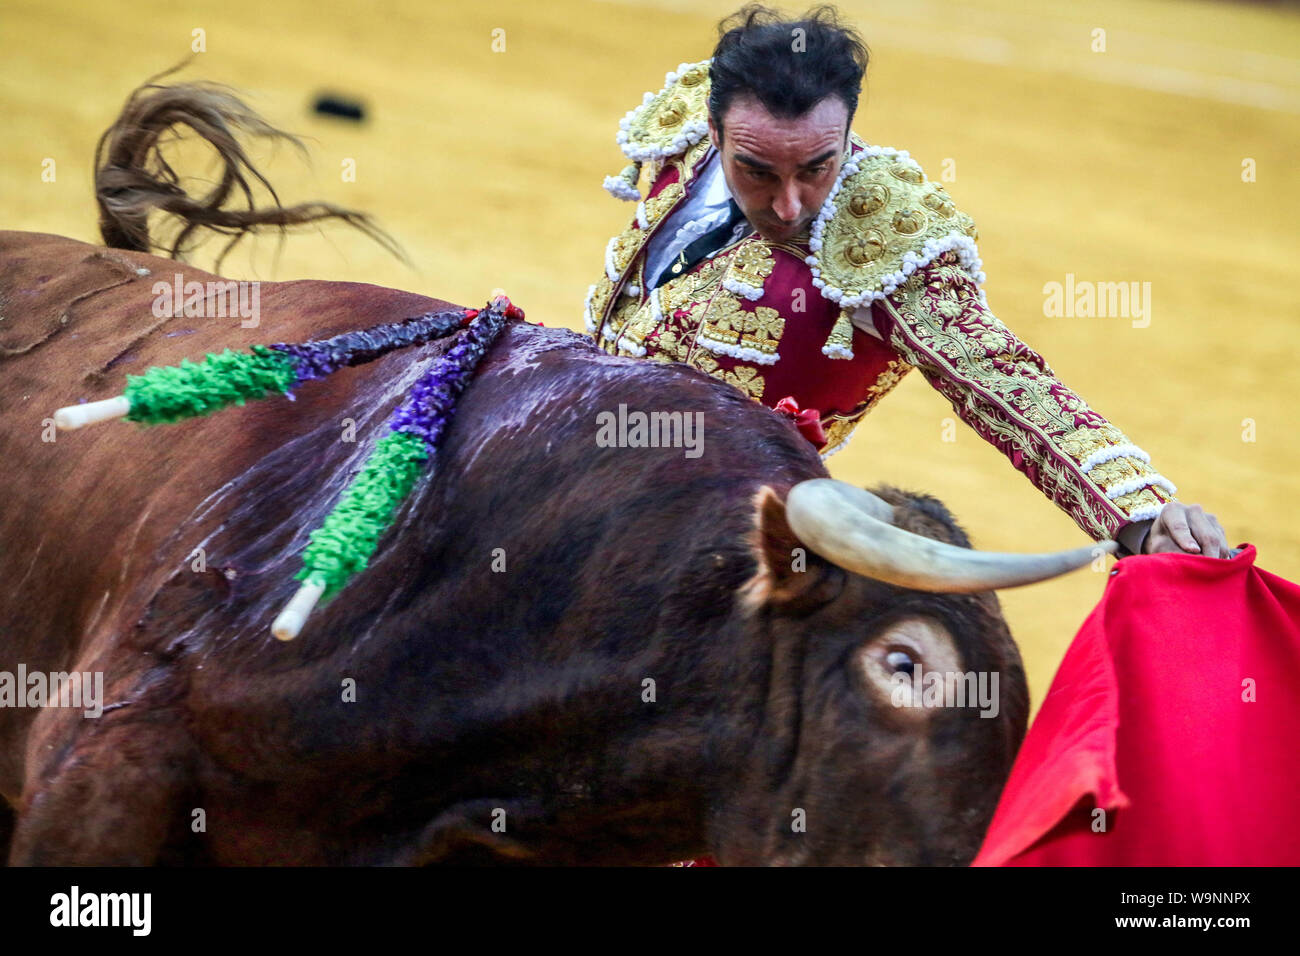 August 14, 2019: 14 augut 2019 (Malaga)Inaugural bullfight of the 145th anniversary of the bullring of La Malagueta,(Malaga) In the photo the torero Enrique Ponce. Credit: Lorenzo Carnero/ZUMA Wire/Alamy Live News Stock Photo